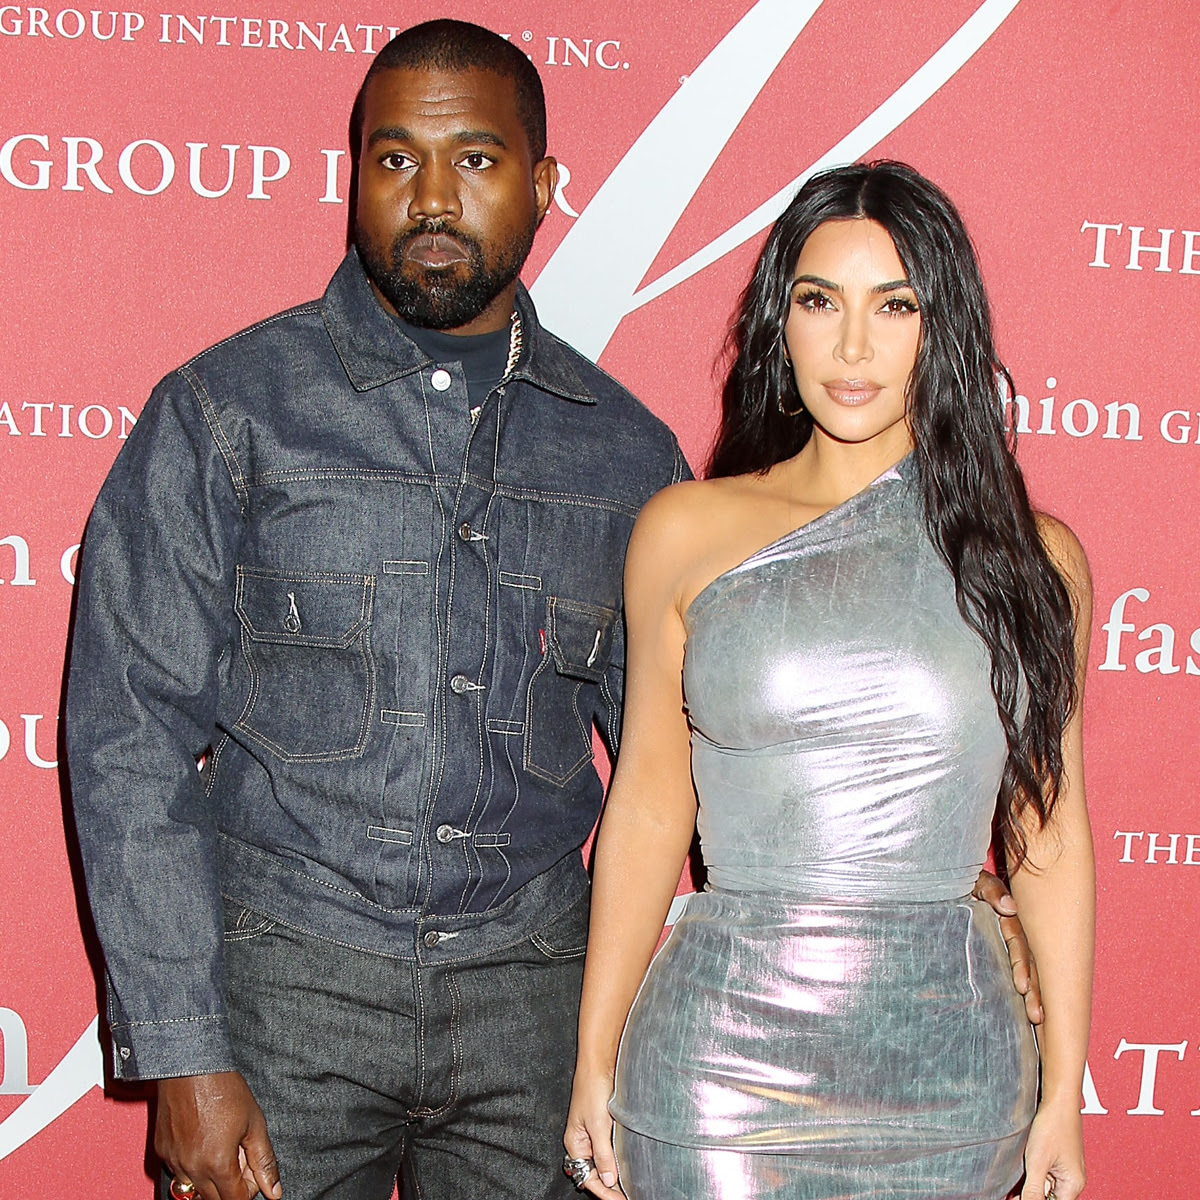 Kanye West Appears to Unfollow Kim Kardashian on Twitter After Irina Shayk Outing